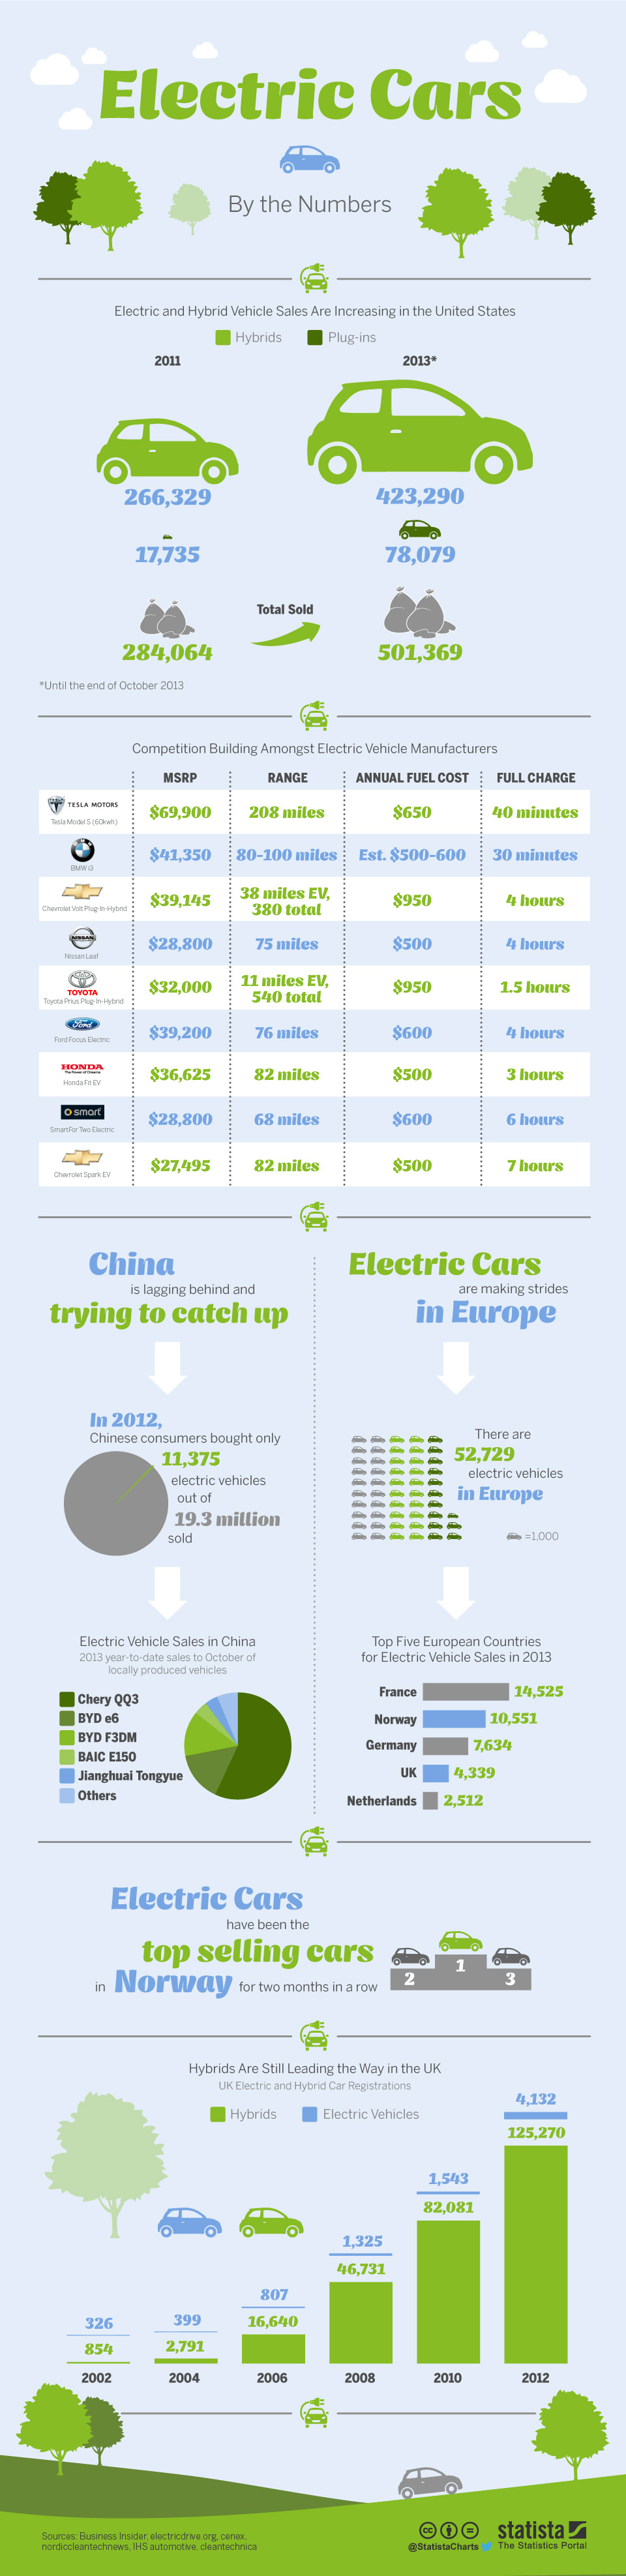 Infographic: Electric Cars by the Numbers   Statista